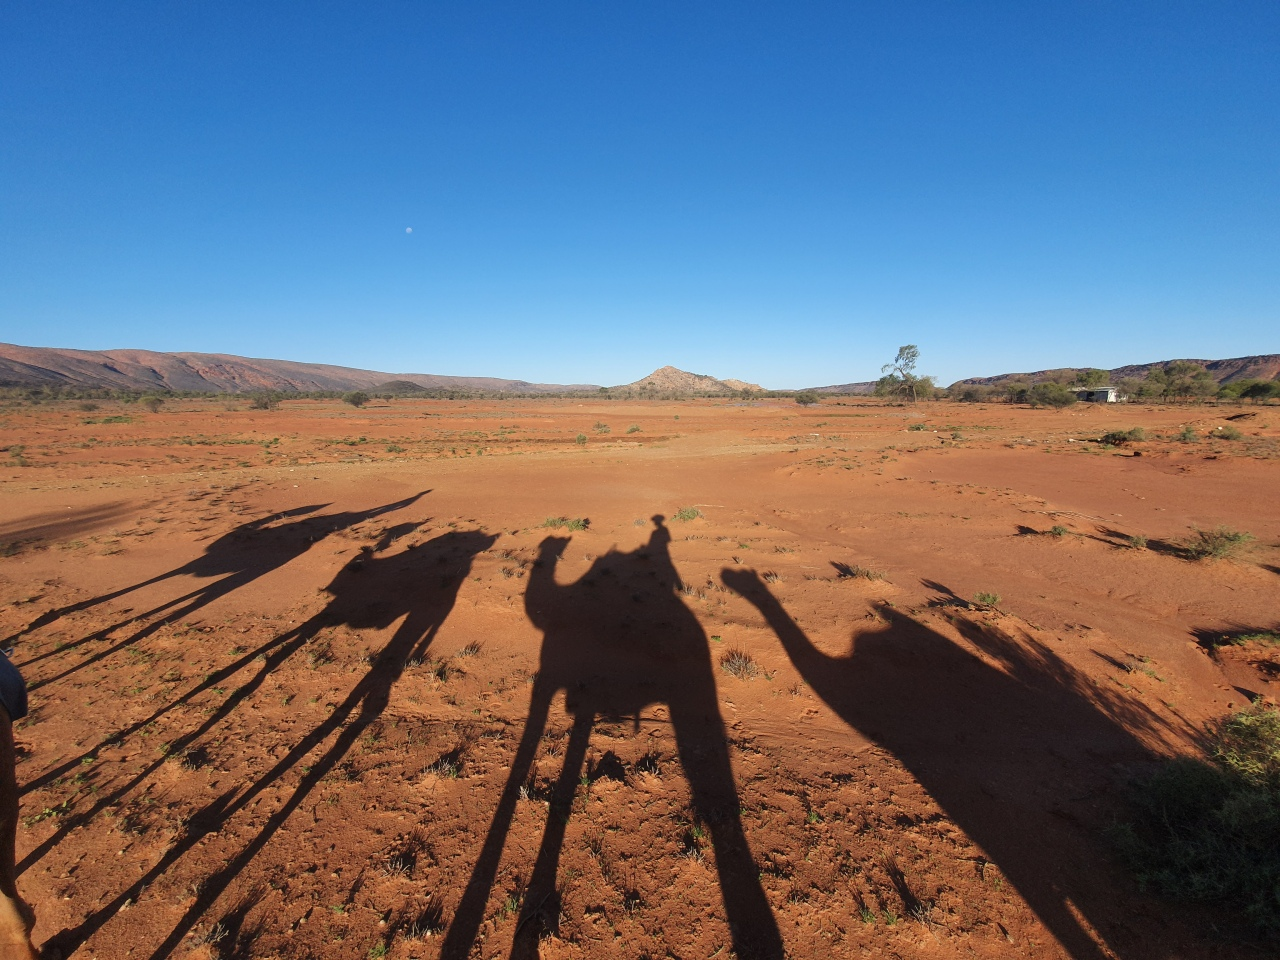 Day 159: Riding Camels in the Outback